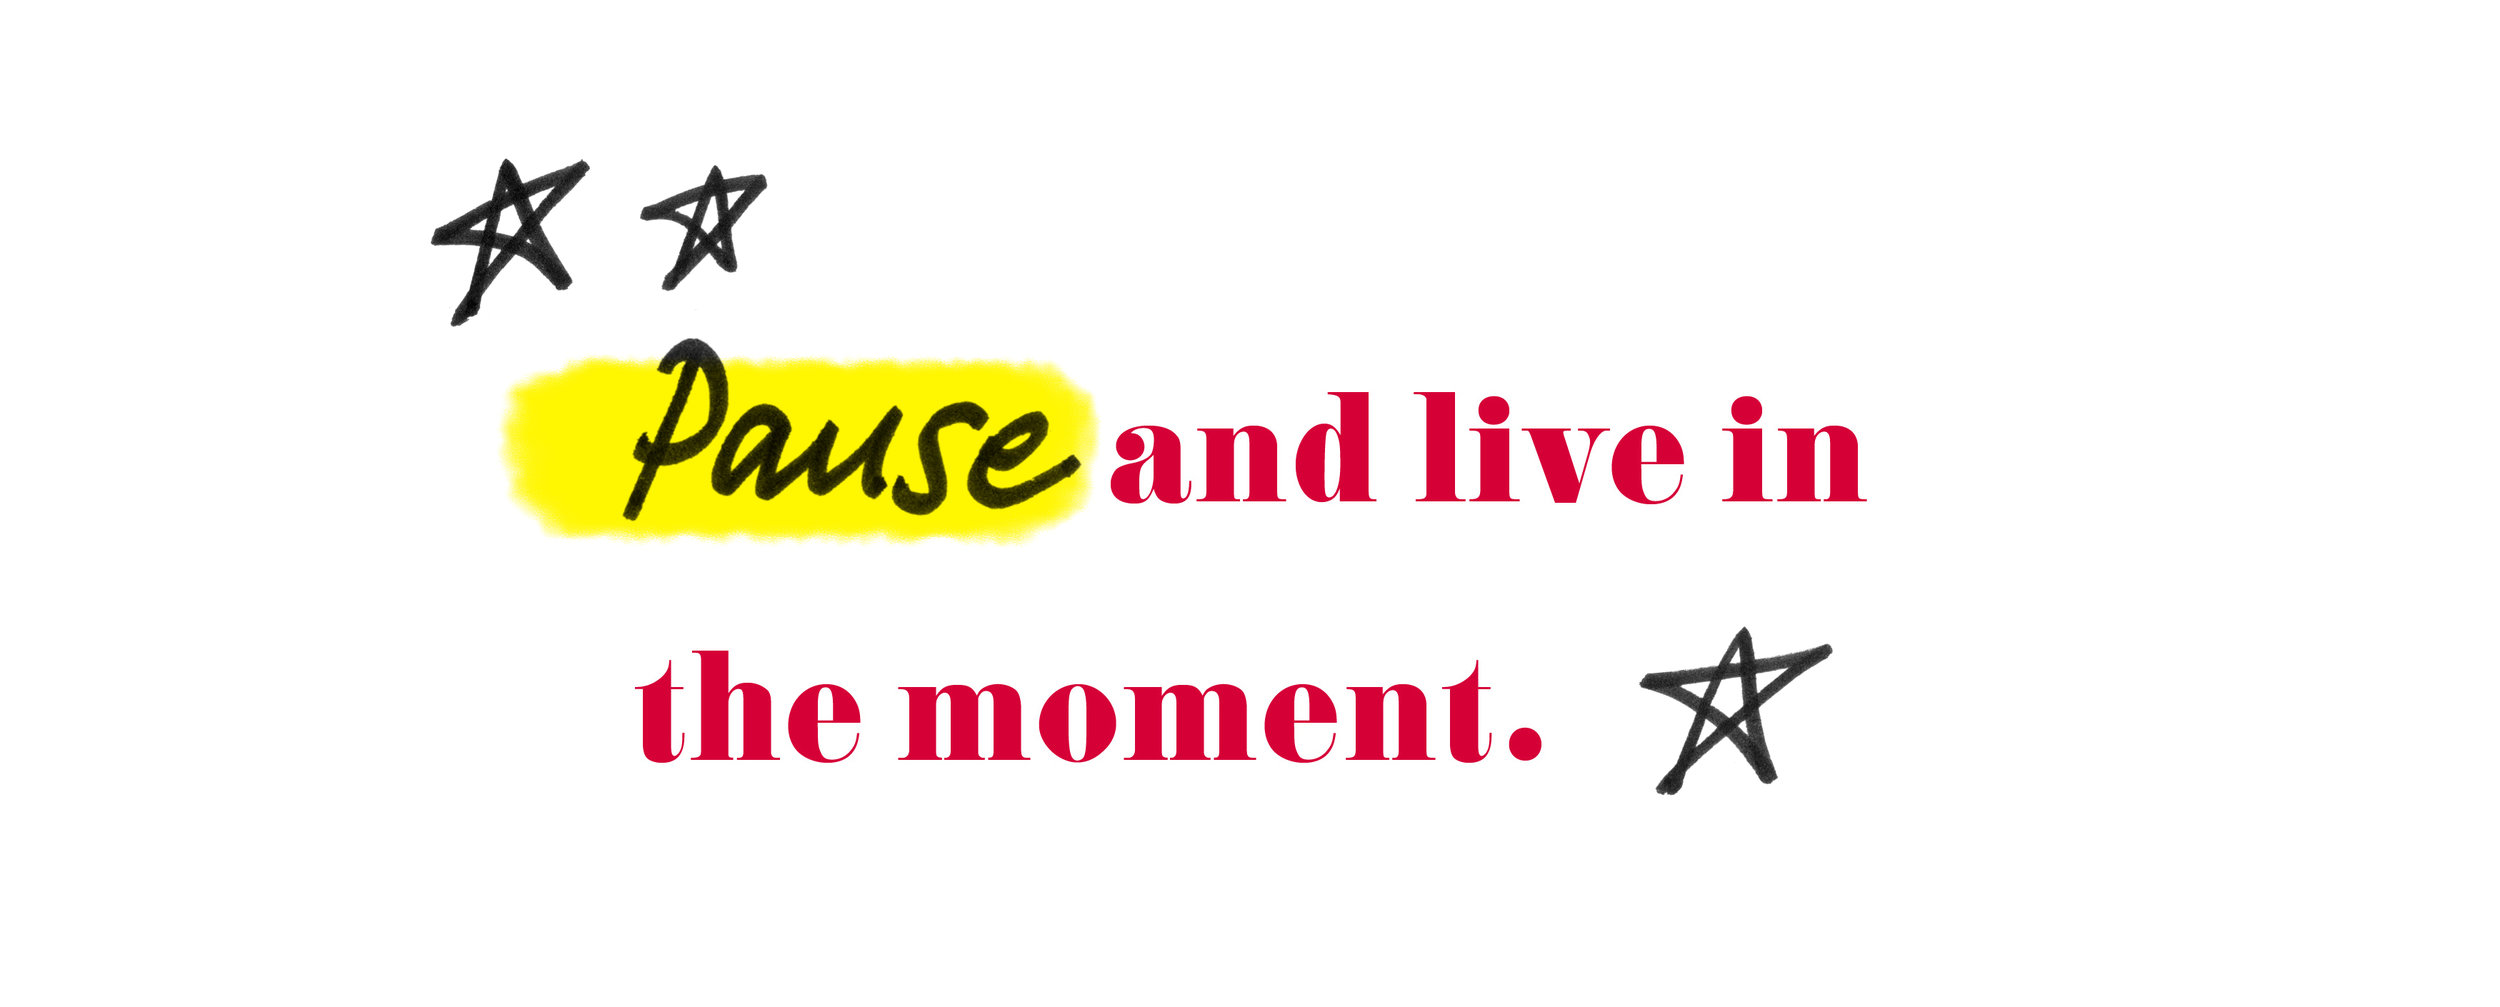 """Quote by Nastia Liukin - """"Pause and live in the moment."""""""